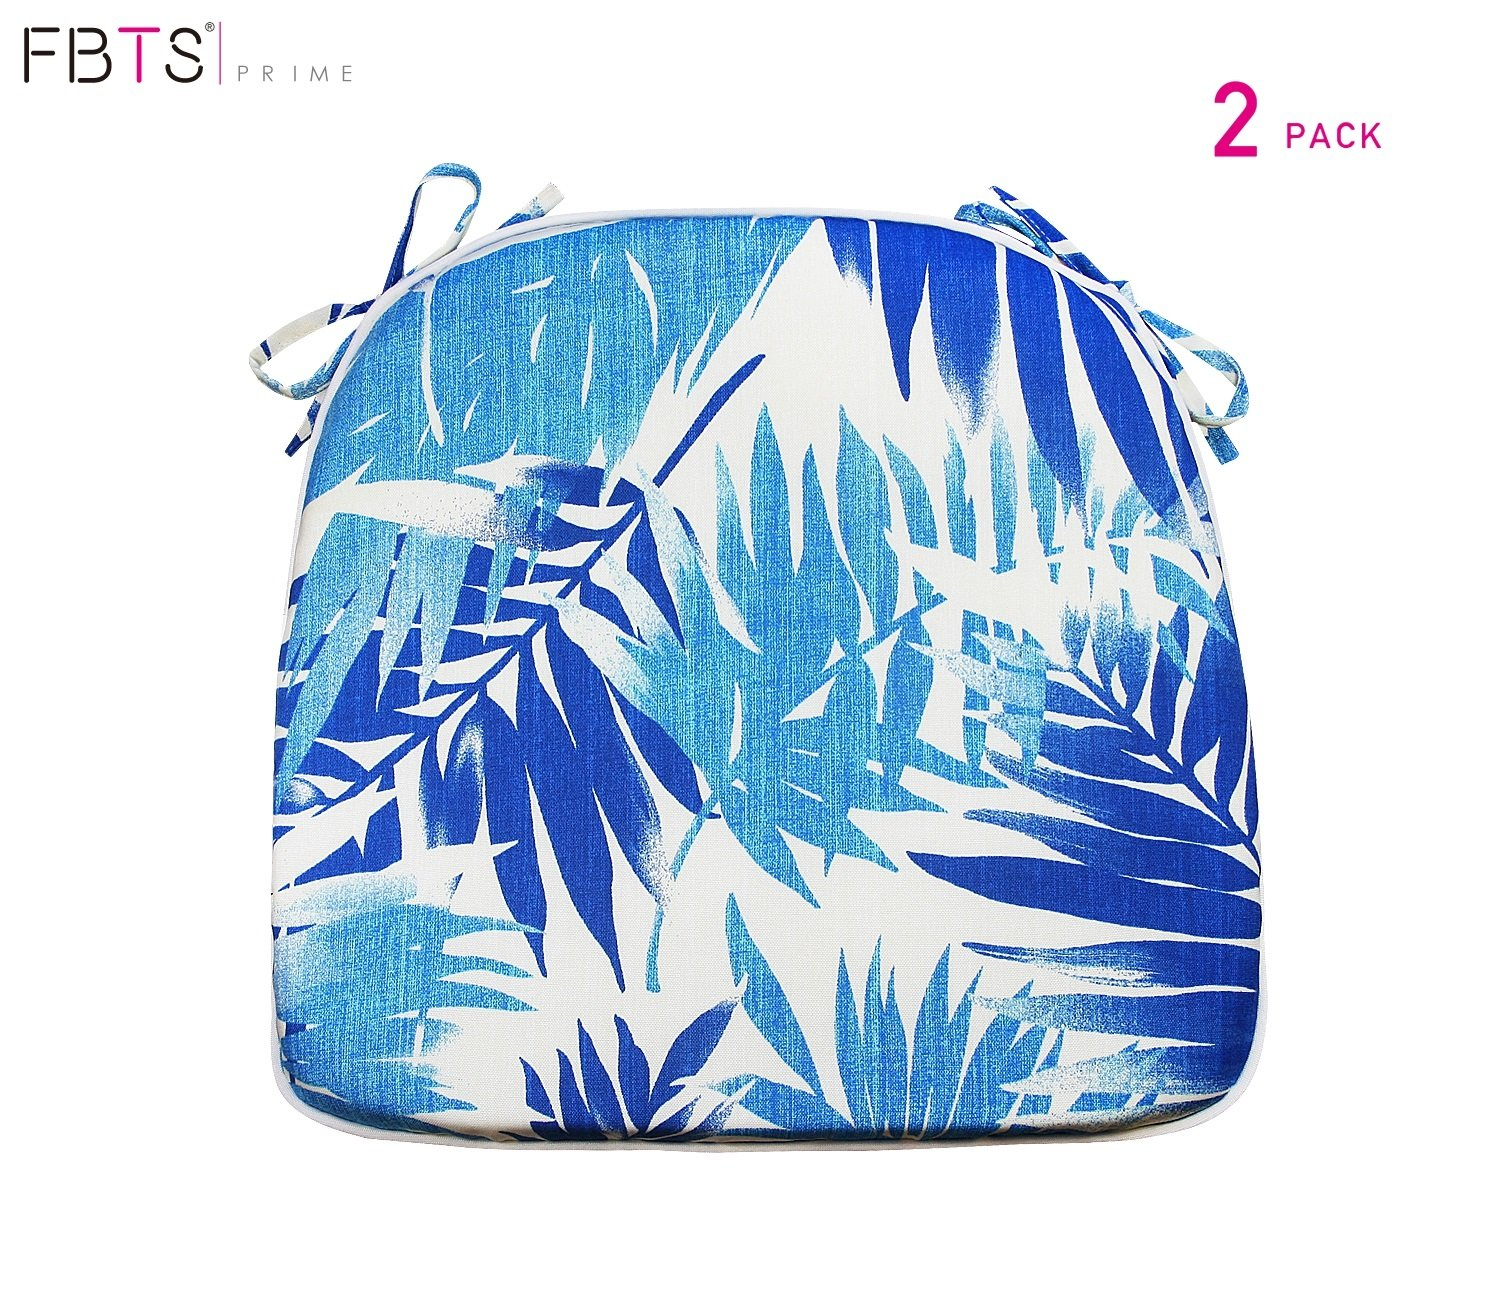 FBTS Prime Outdoor Chair Cushions (Set of 2) 16x17 Inches Patio Seat Cushions Blue Leaf Square Chair Pads for Outdoor Patio Furniture Garden Home Office